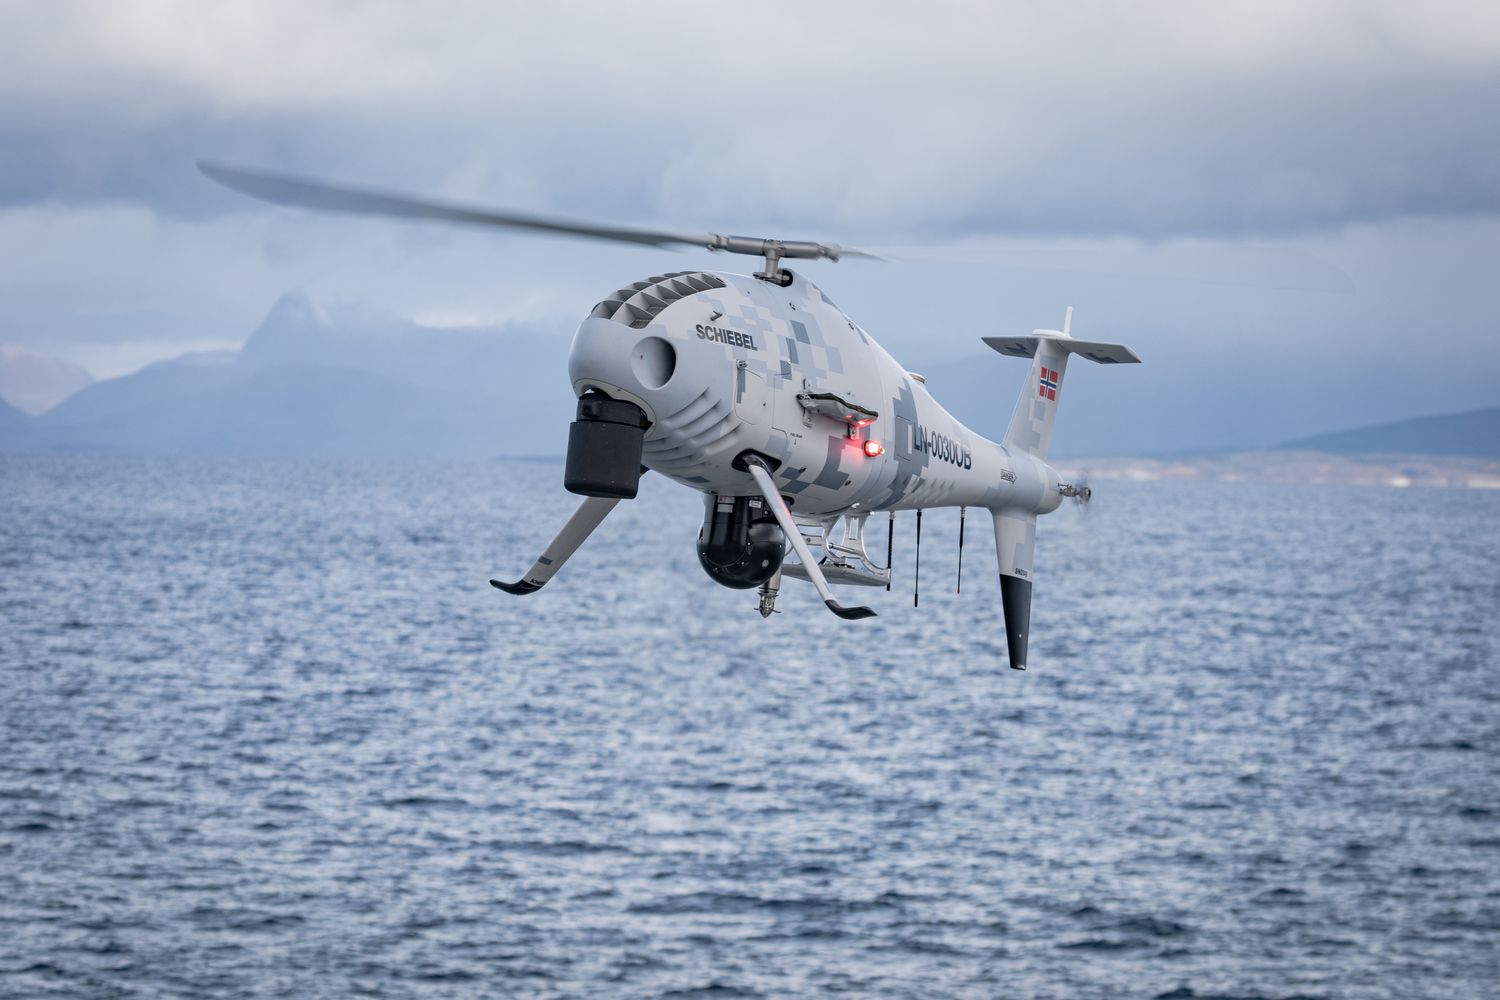 The Royal Thai Navy will buy two of the S-100 camcopters. (Photo from  Schiebel Corporation website)